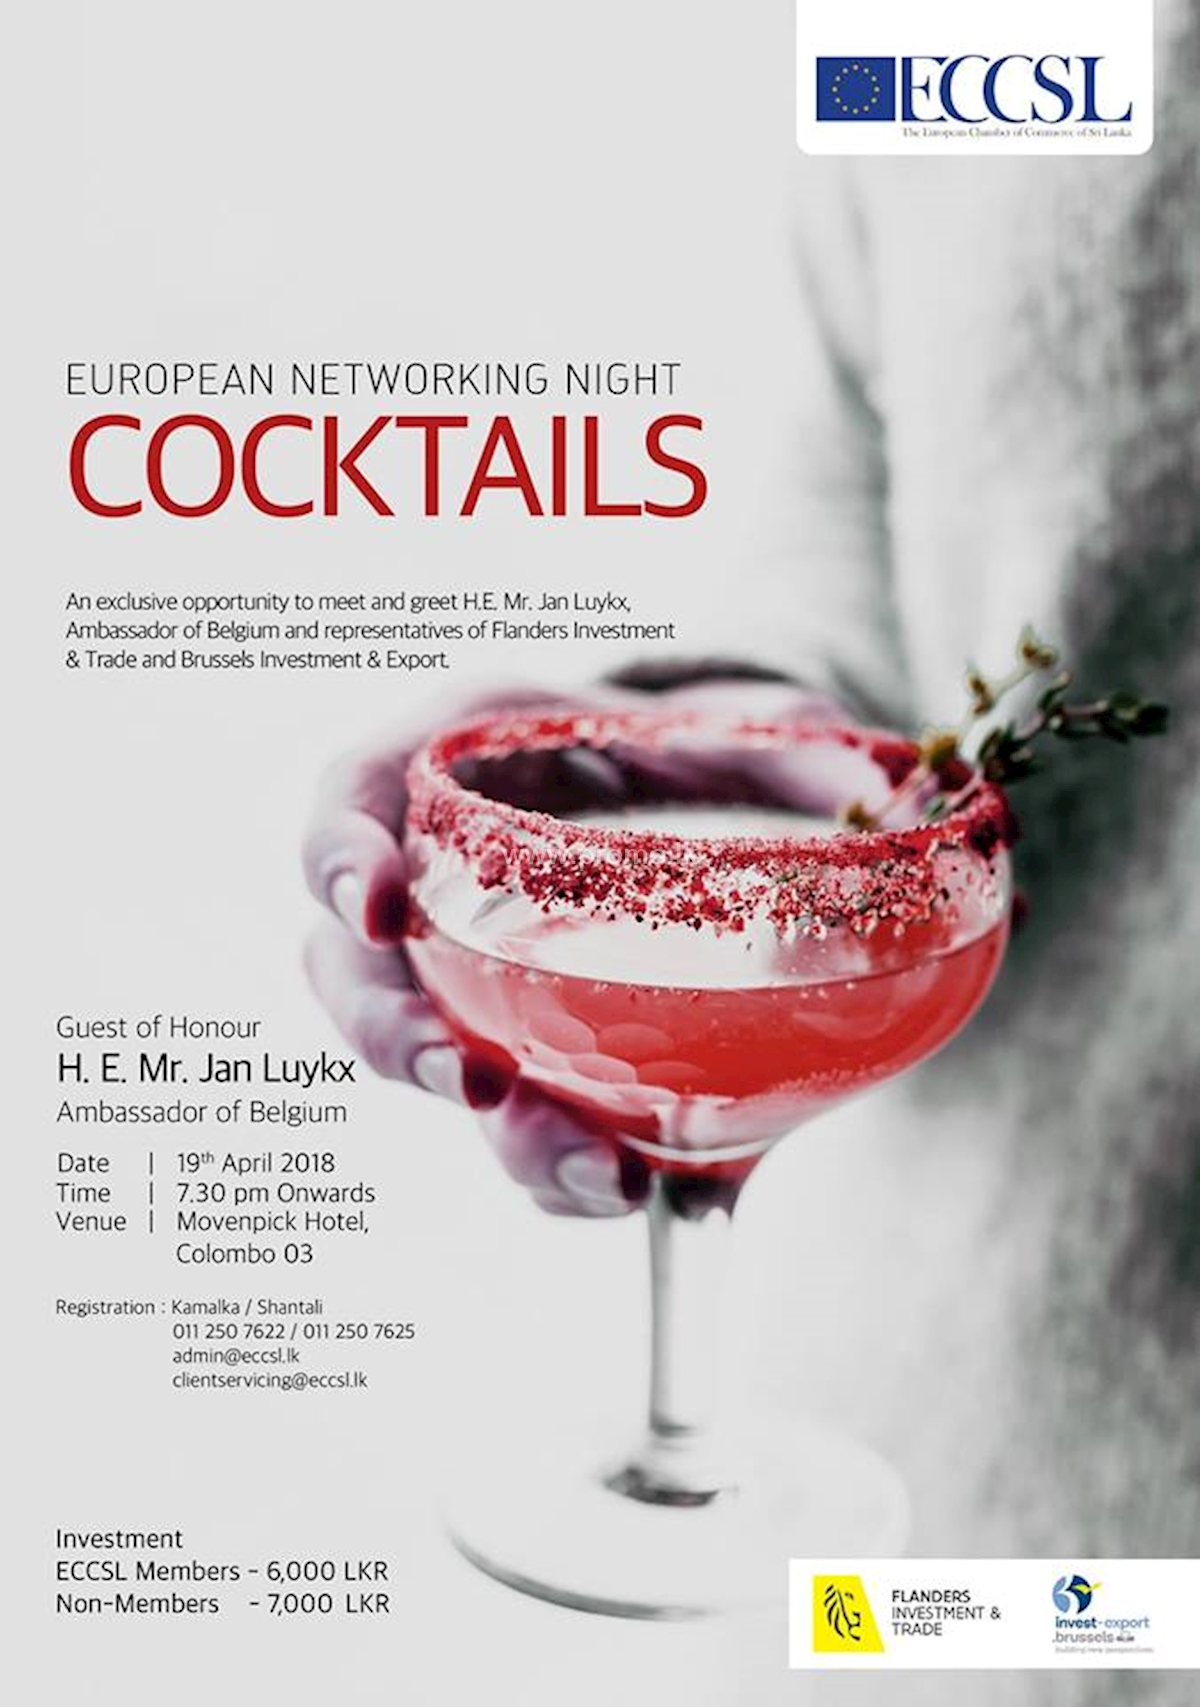 European Networking NIGHT - Cocktails at Movenpick Hotel